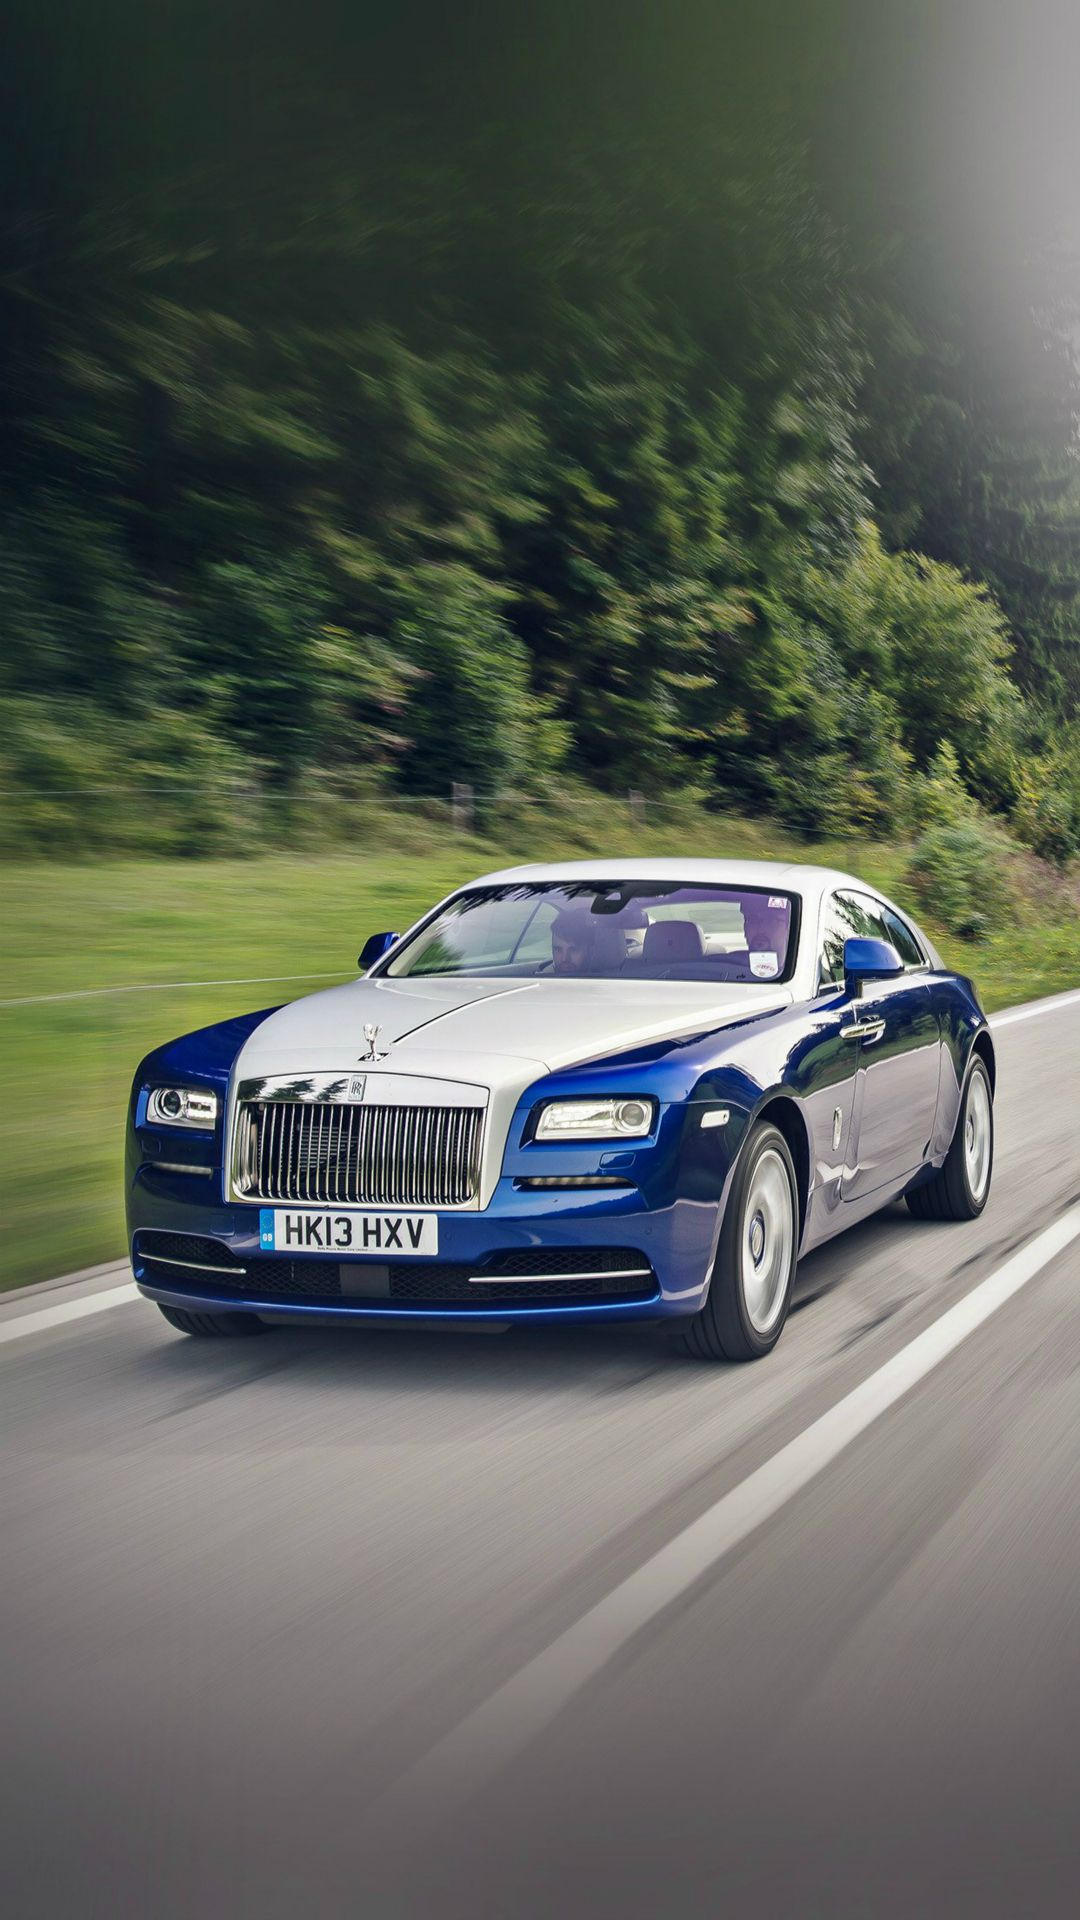 Rolls Royce Wallpaper Rolls Royce Cars Rolls Royce Wallpaper